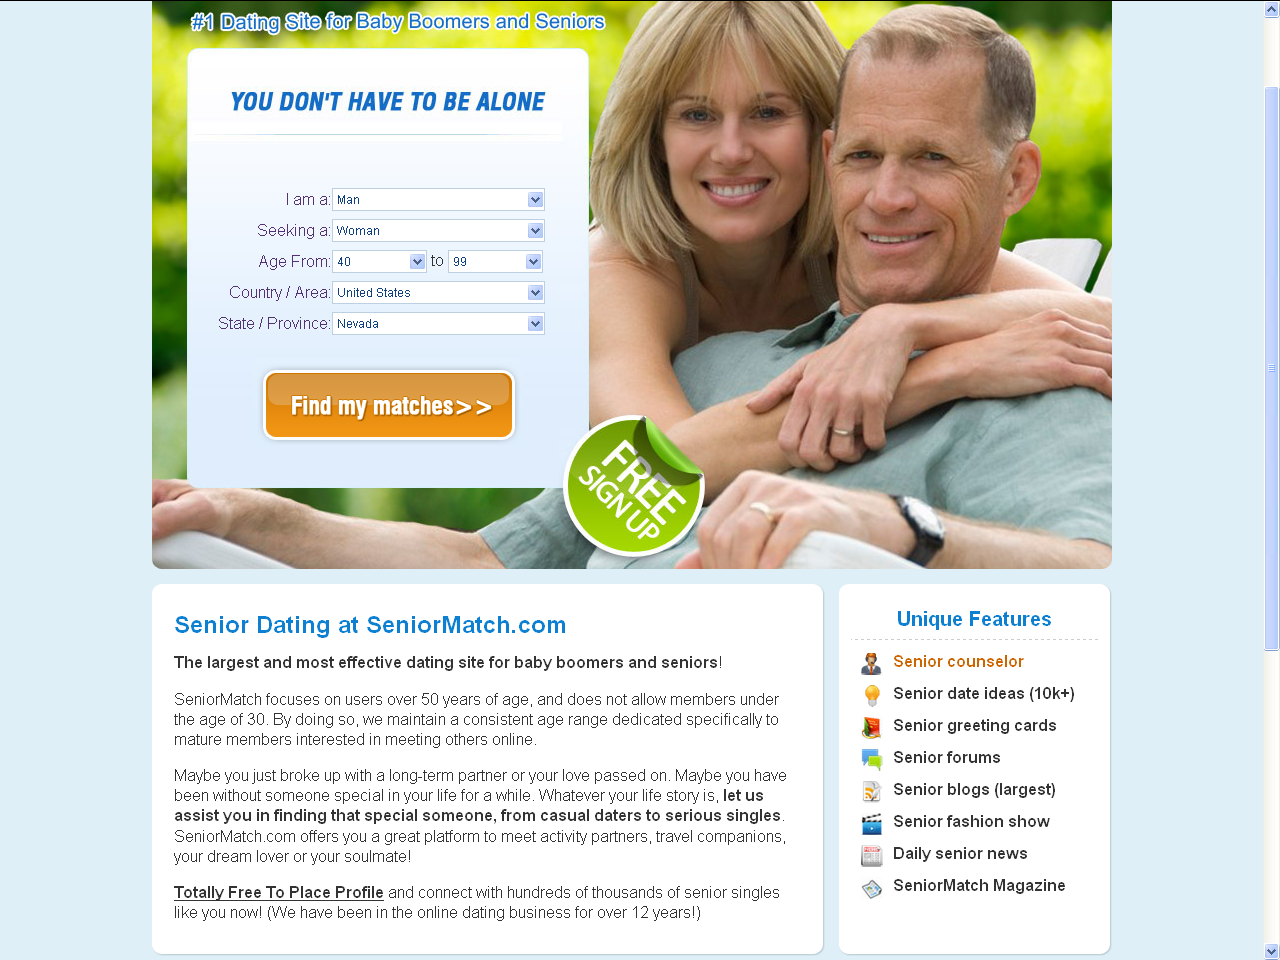 bjsta senior dating site Senior singles make up one of the fastest growing online dating subsections in america¹ it's easy to see why senior dating and online dating sites fit together so well – for after all, a premium dating site can offer mature singles romantic options that can be hard to find in the offline world.